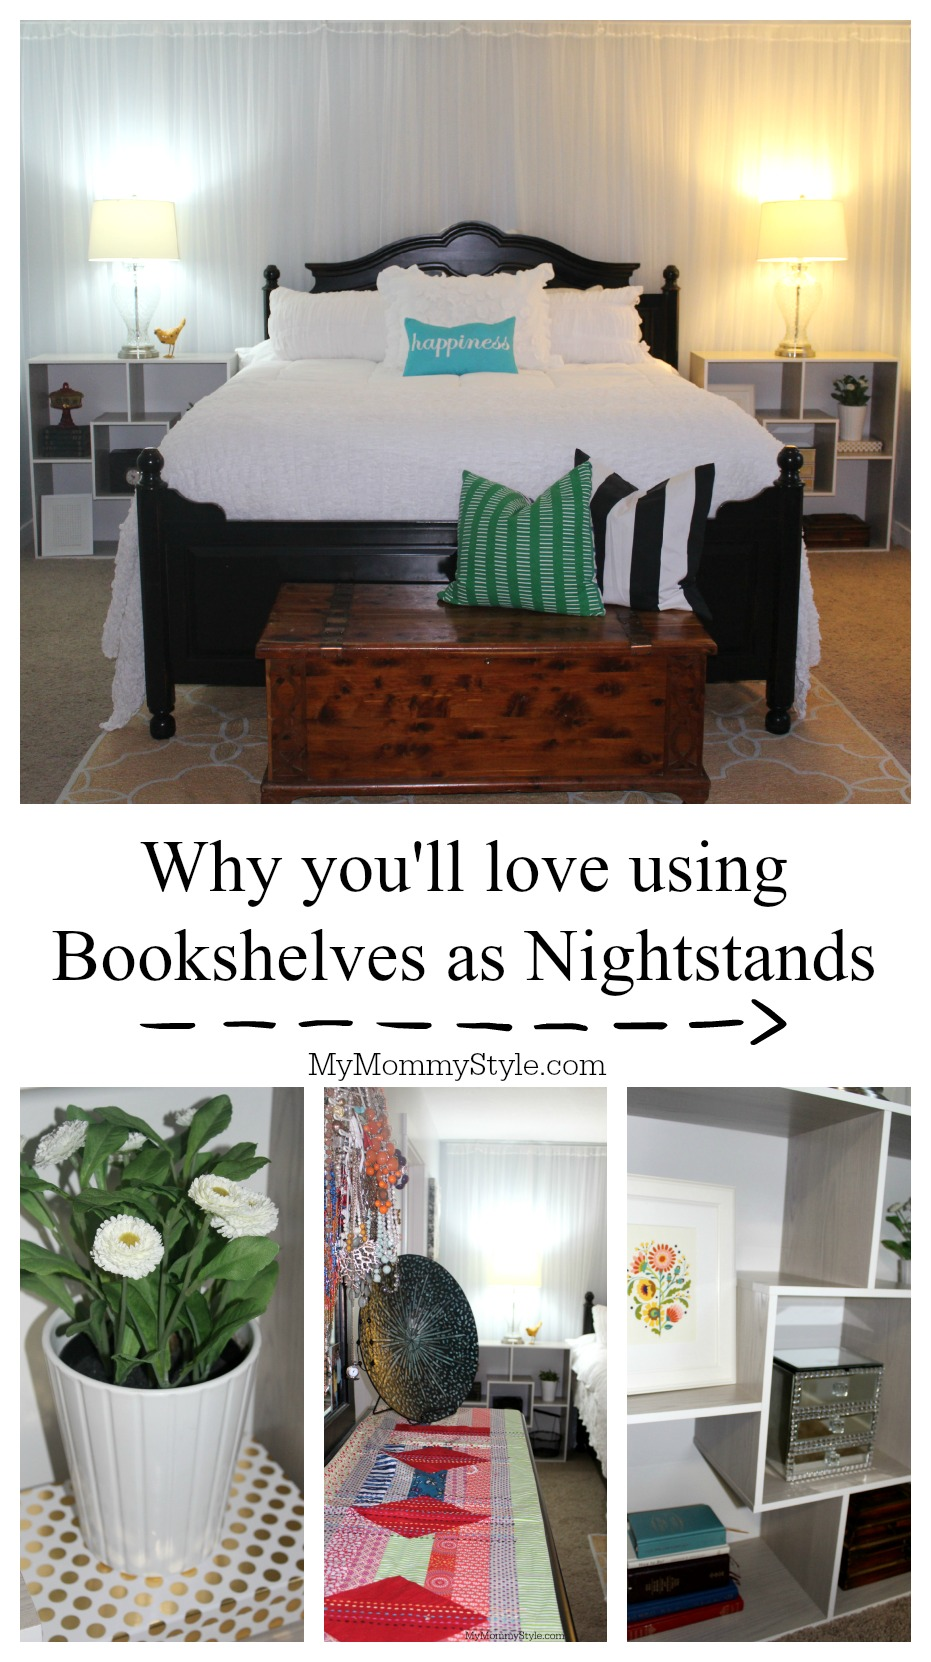 bookshelves as nightstands sauder mymommystyle master bedroom bookshelves as nightstands - Bedroom Bookshelves